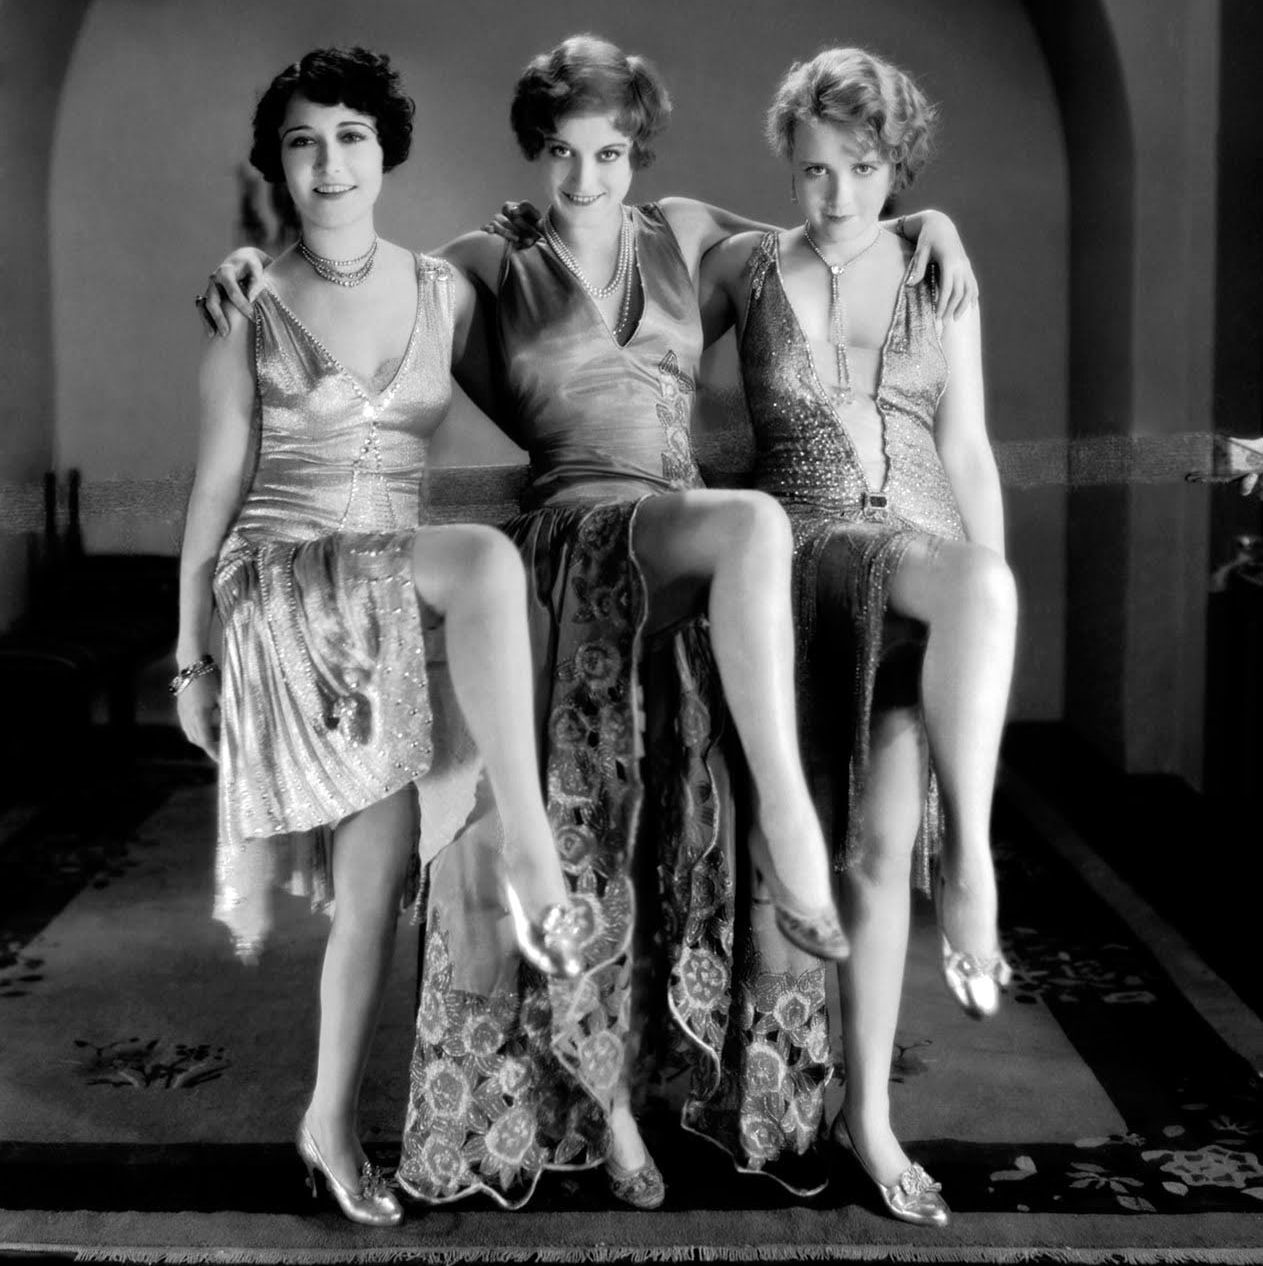 Looking Back at the Jazz Age